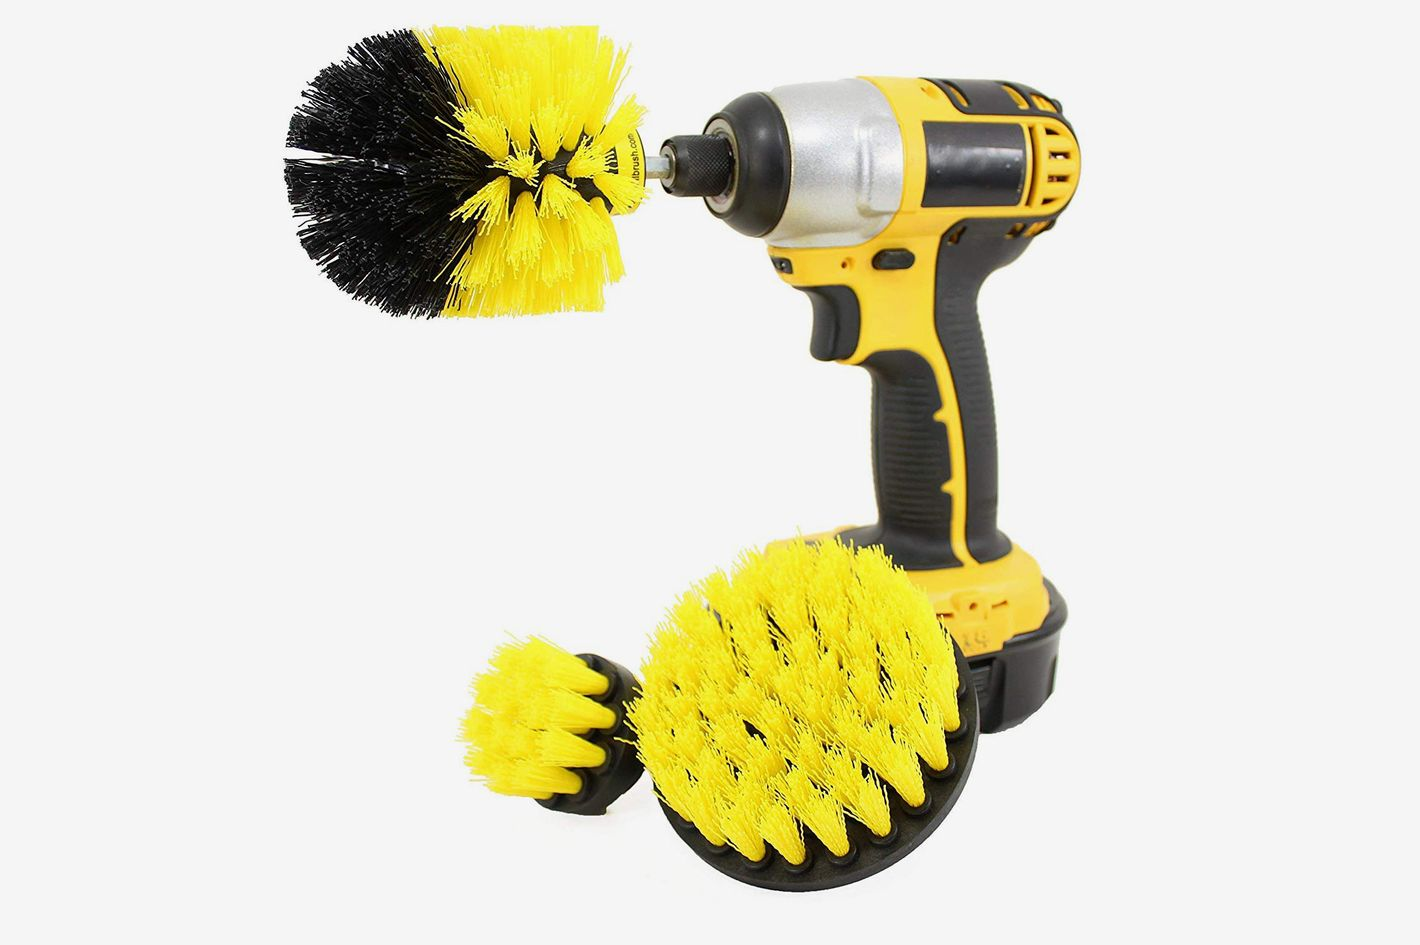 Drillbrush Bathroom Surfaces Power Scrubber Cleaning Kit